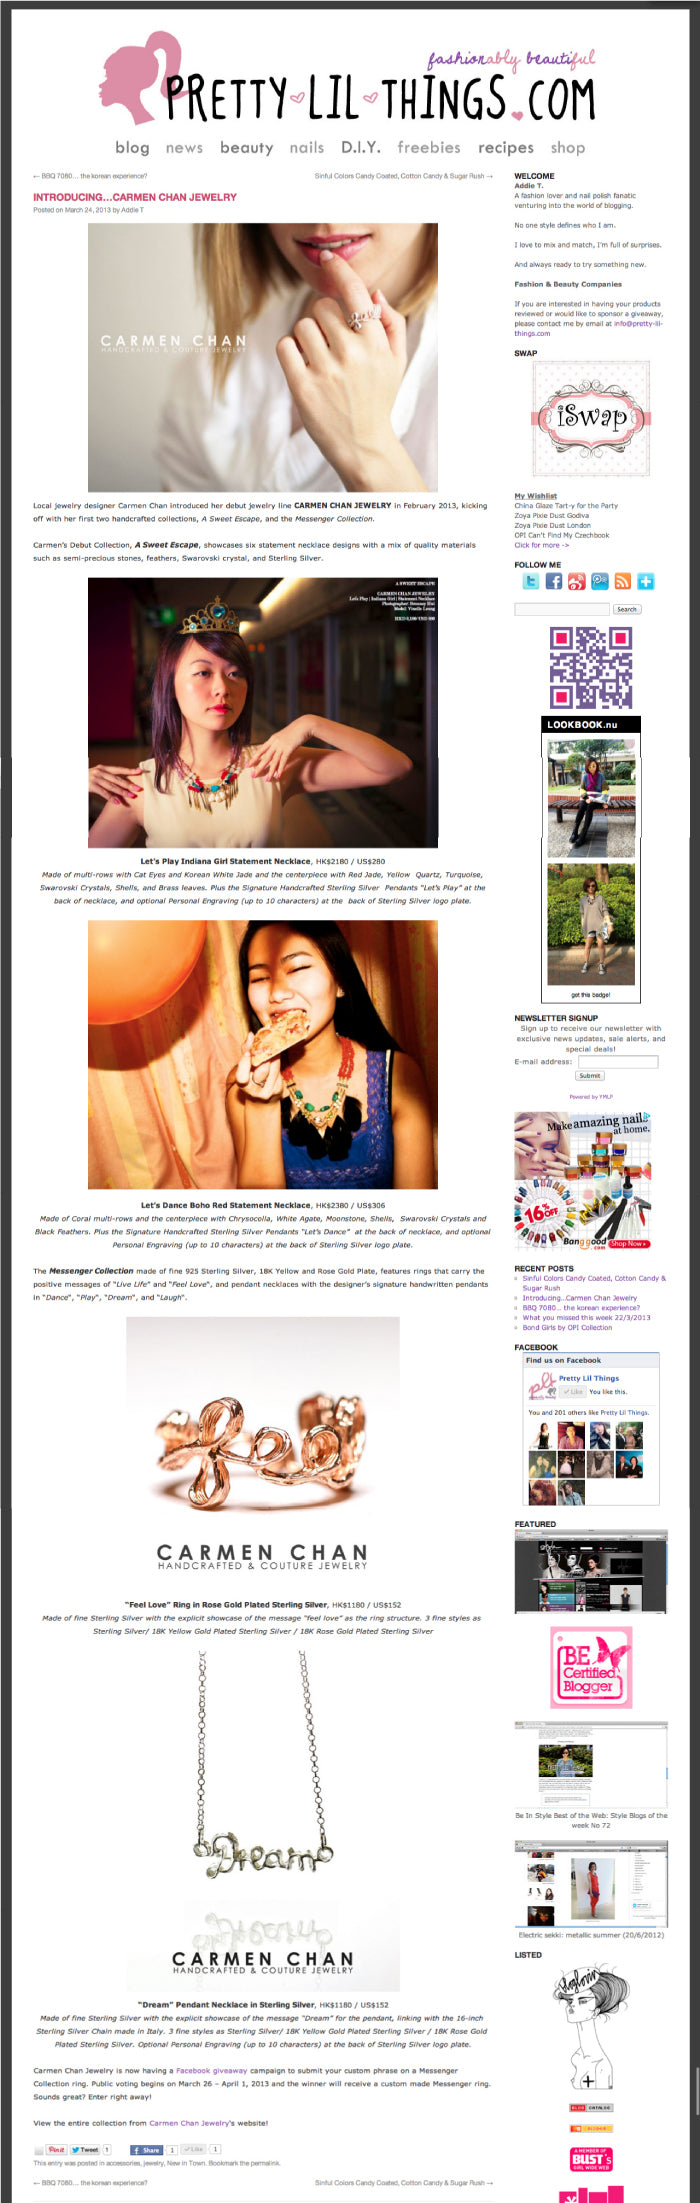 Carmen Chan Jewelry featured in Pretty Lil Things